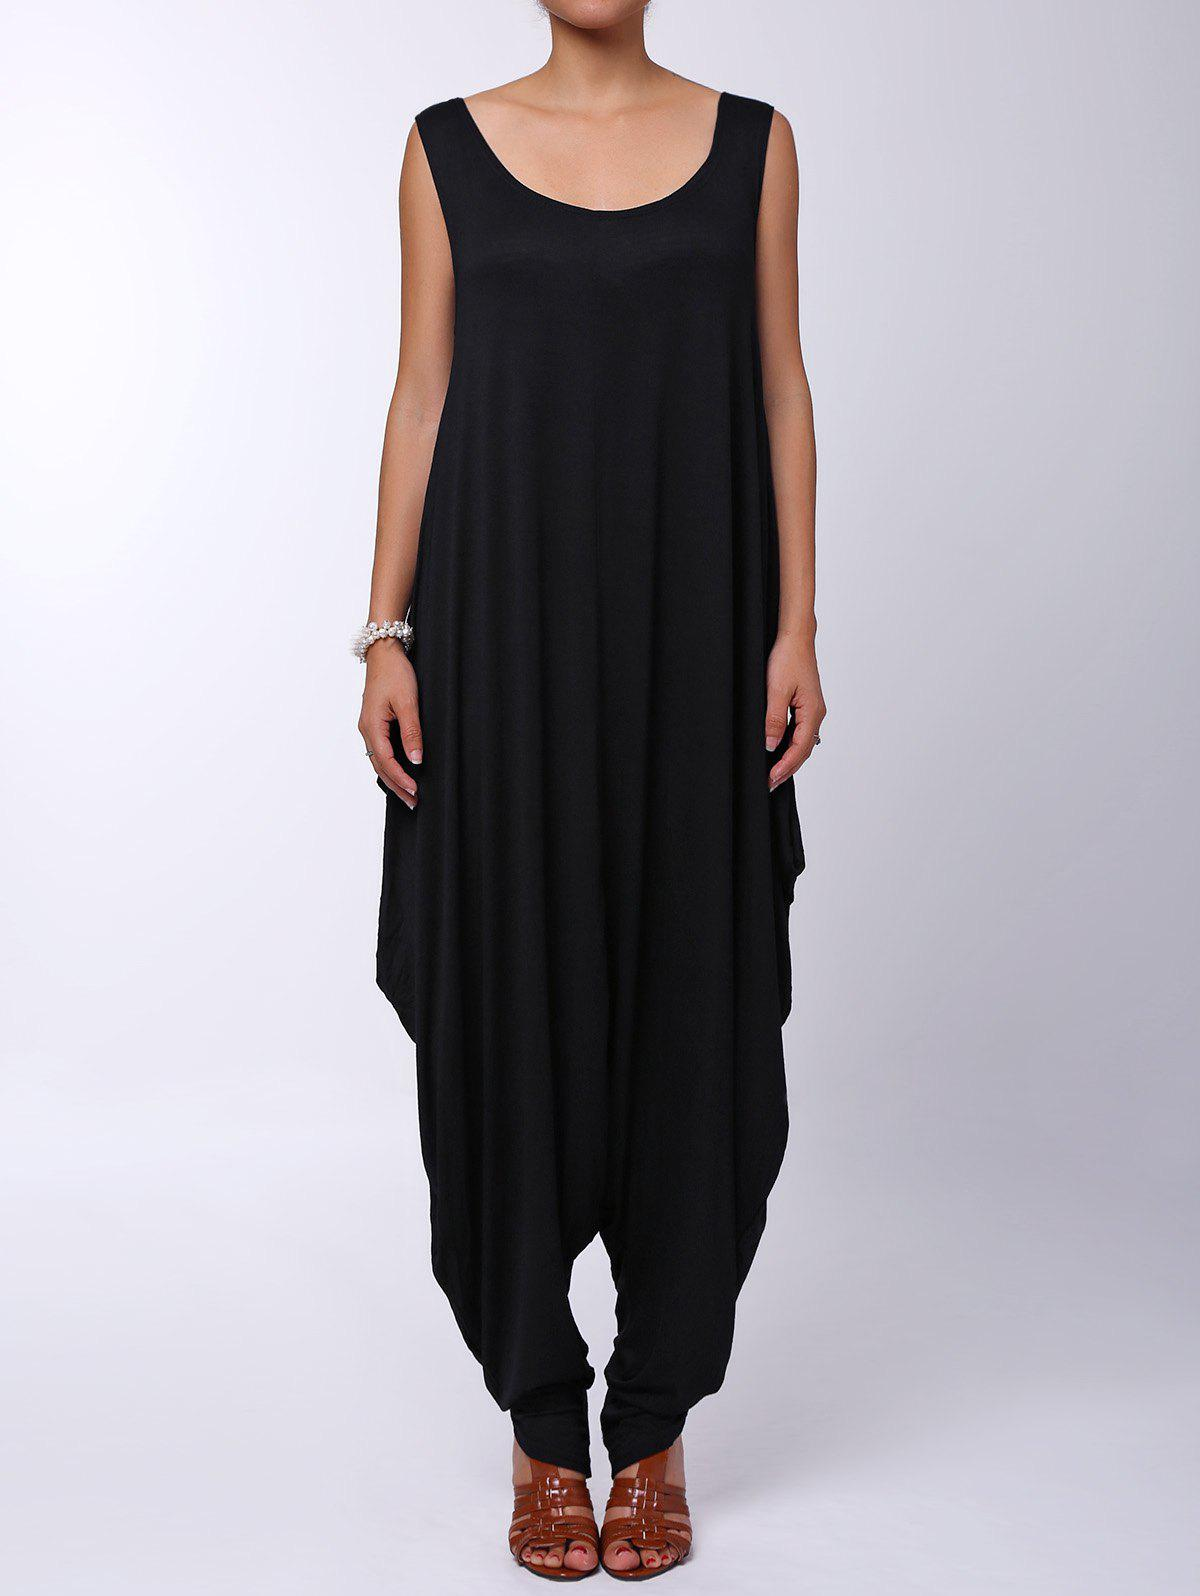 Sexy Spaghetti Strap Sleeveless Loose-Fitting Solid Color Women's Jumpsuit